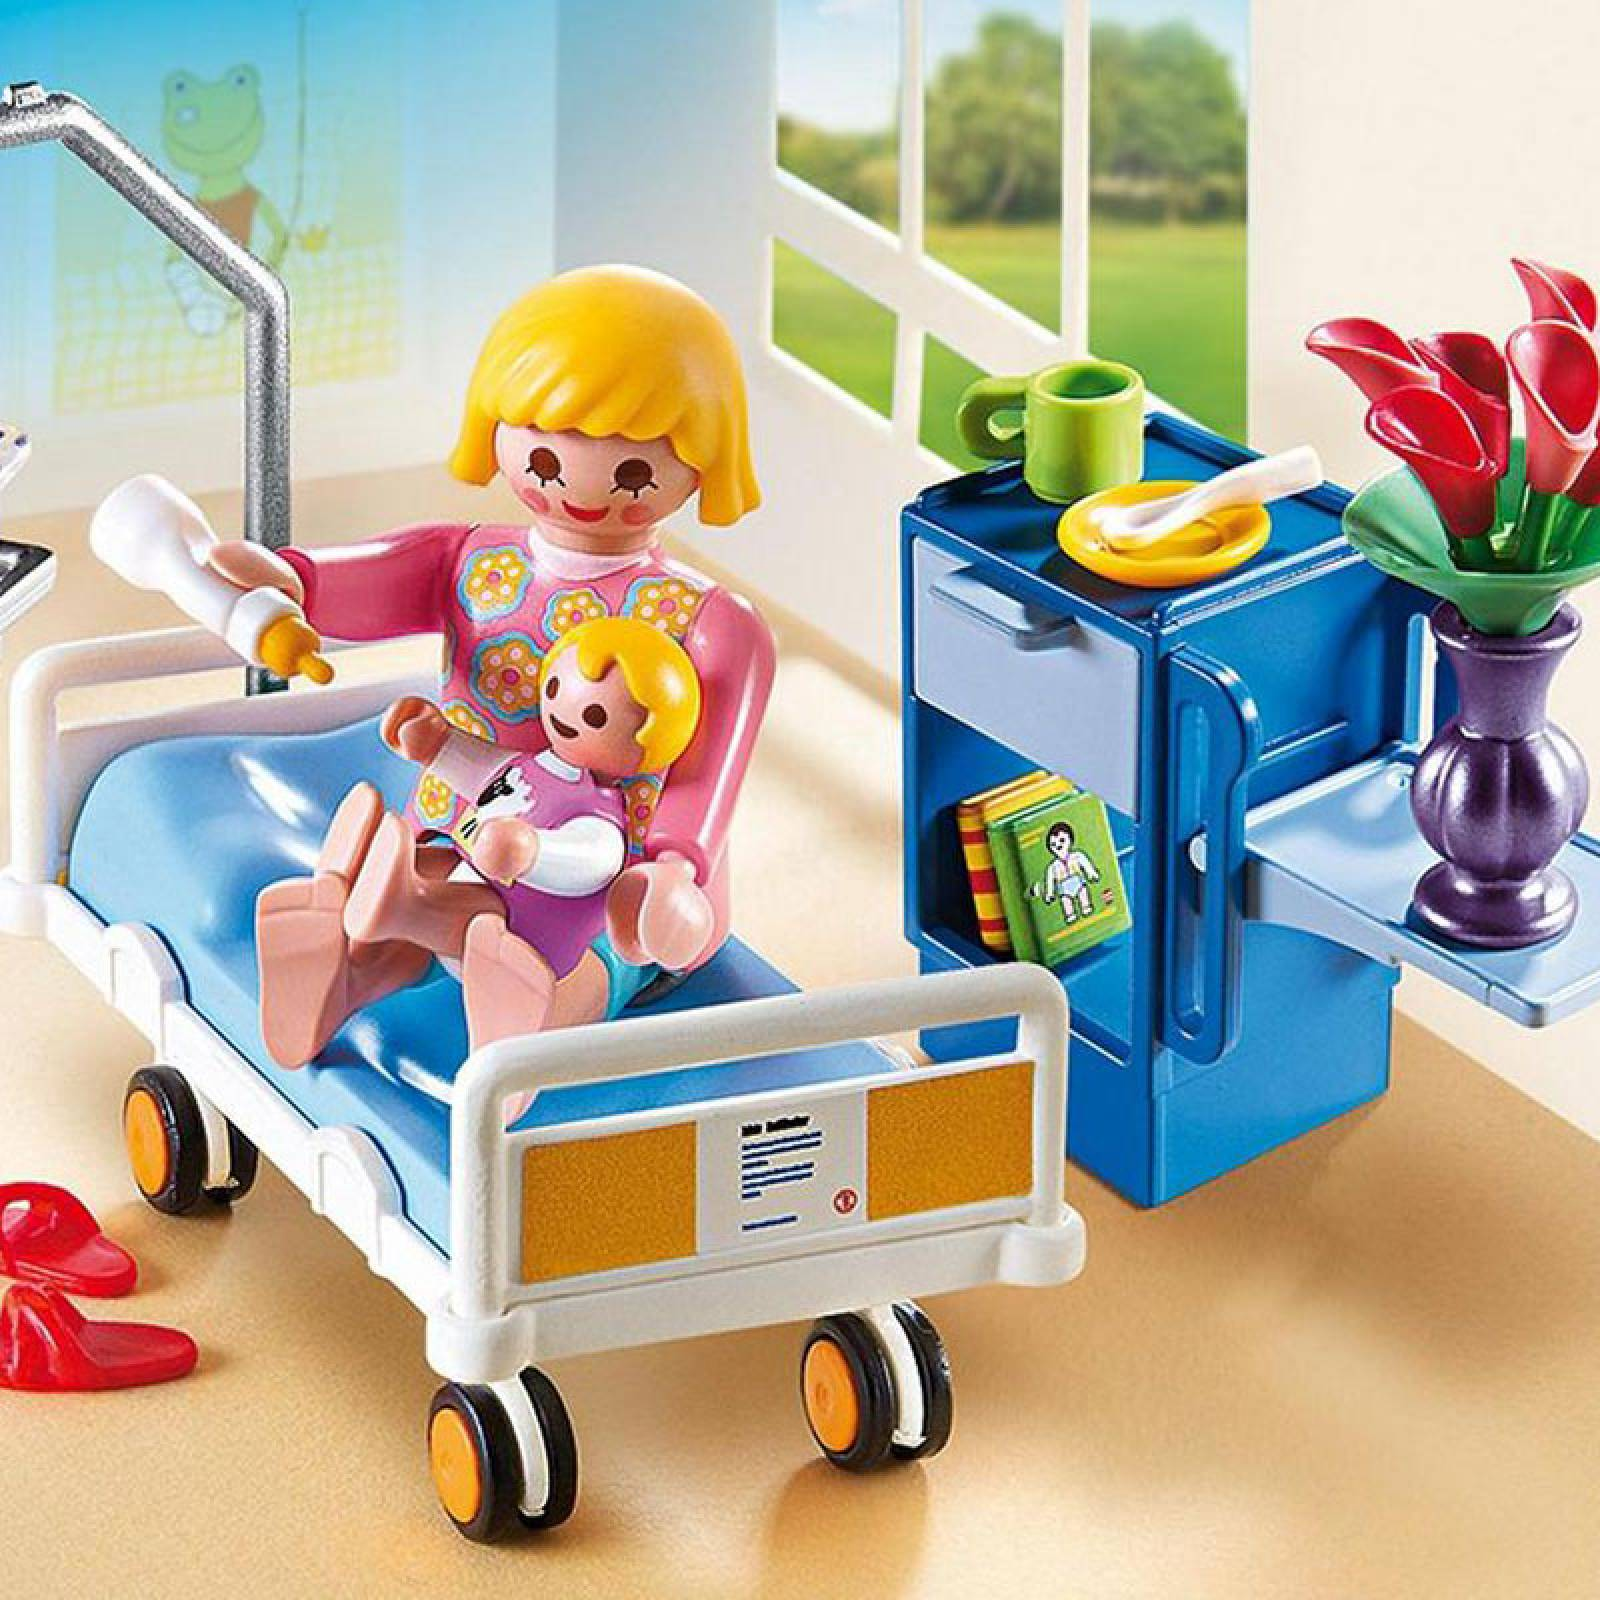 Maternity Room City Life Playmobil 6660 4-10yrs thumbnails